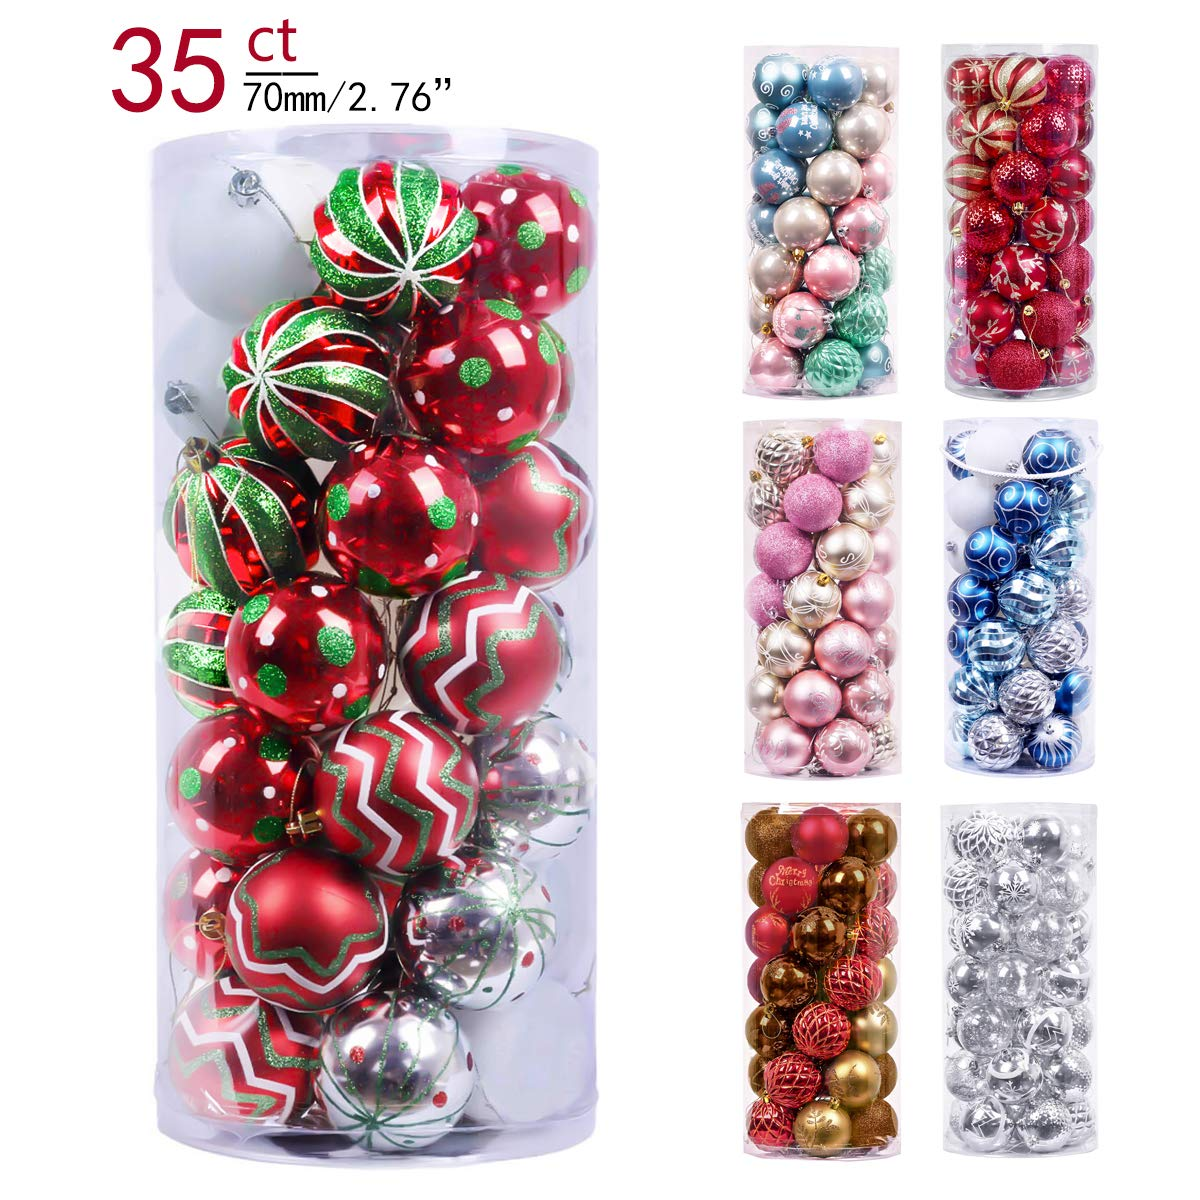 Valery Madelyn 35ct 70mm Classic Collection Splendor Red Green White Shatterproof Christmas Ball Ornaments Decoration with String Pre-Tied,Themed with Tree Skirt(Not Included)